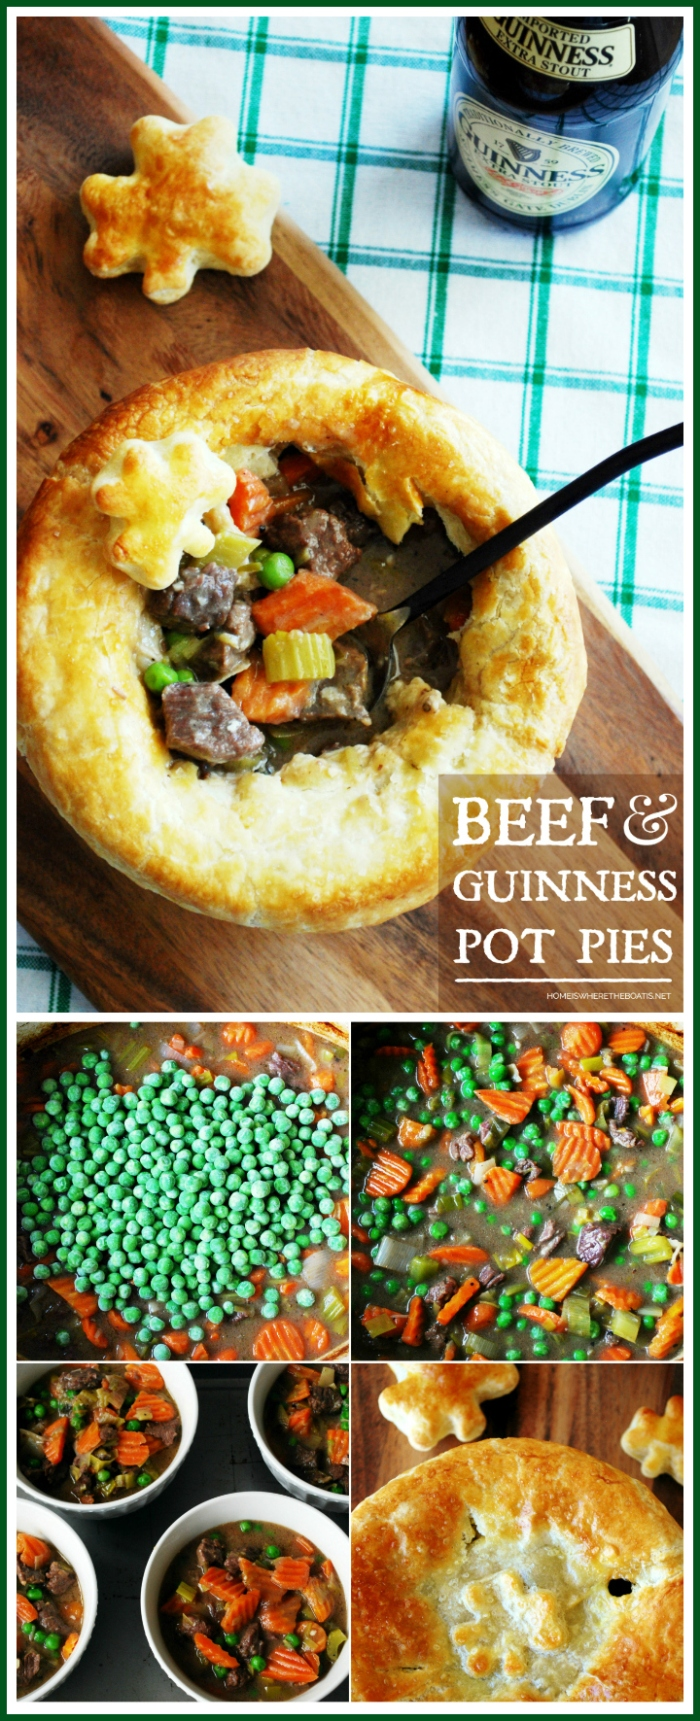 Beef and Guinness Pot Pies with puff pastry shamrocks | ©homeiswheretheboatis.net #stpatricksday #recipes #irish #guinness